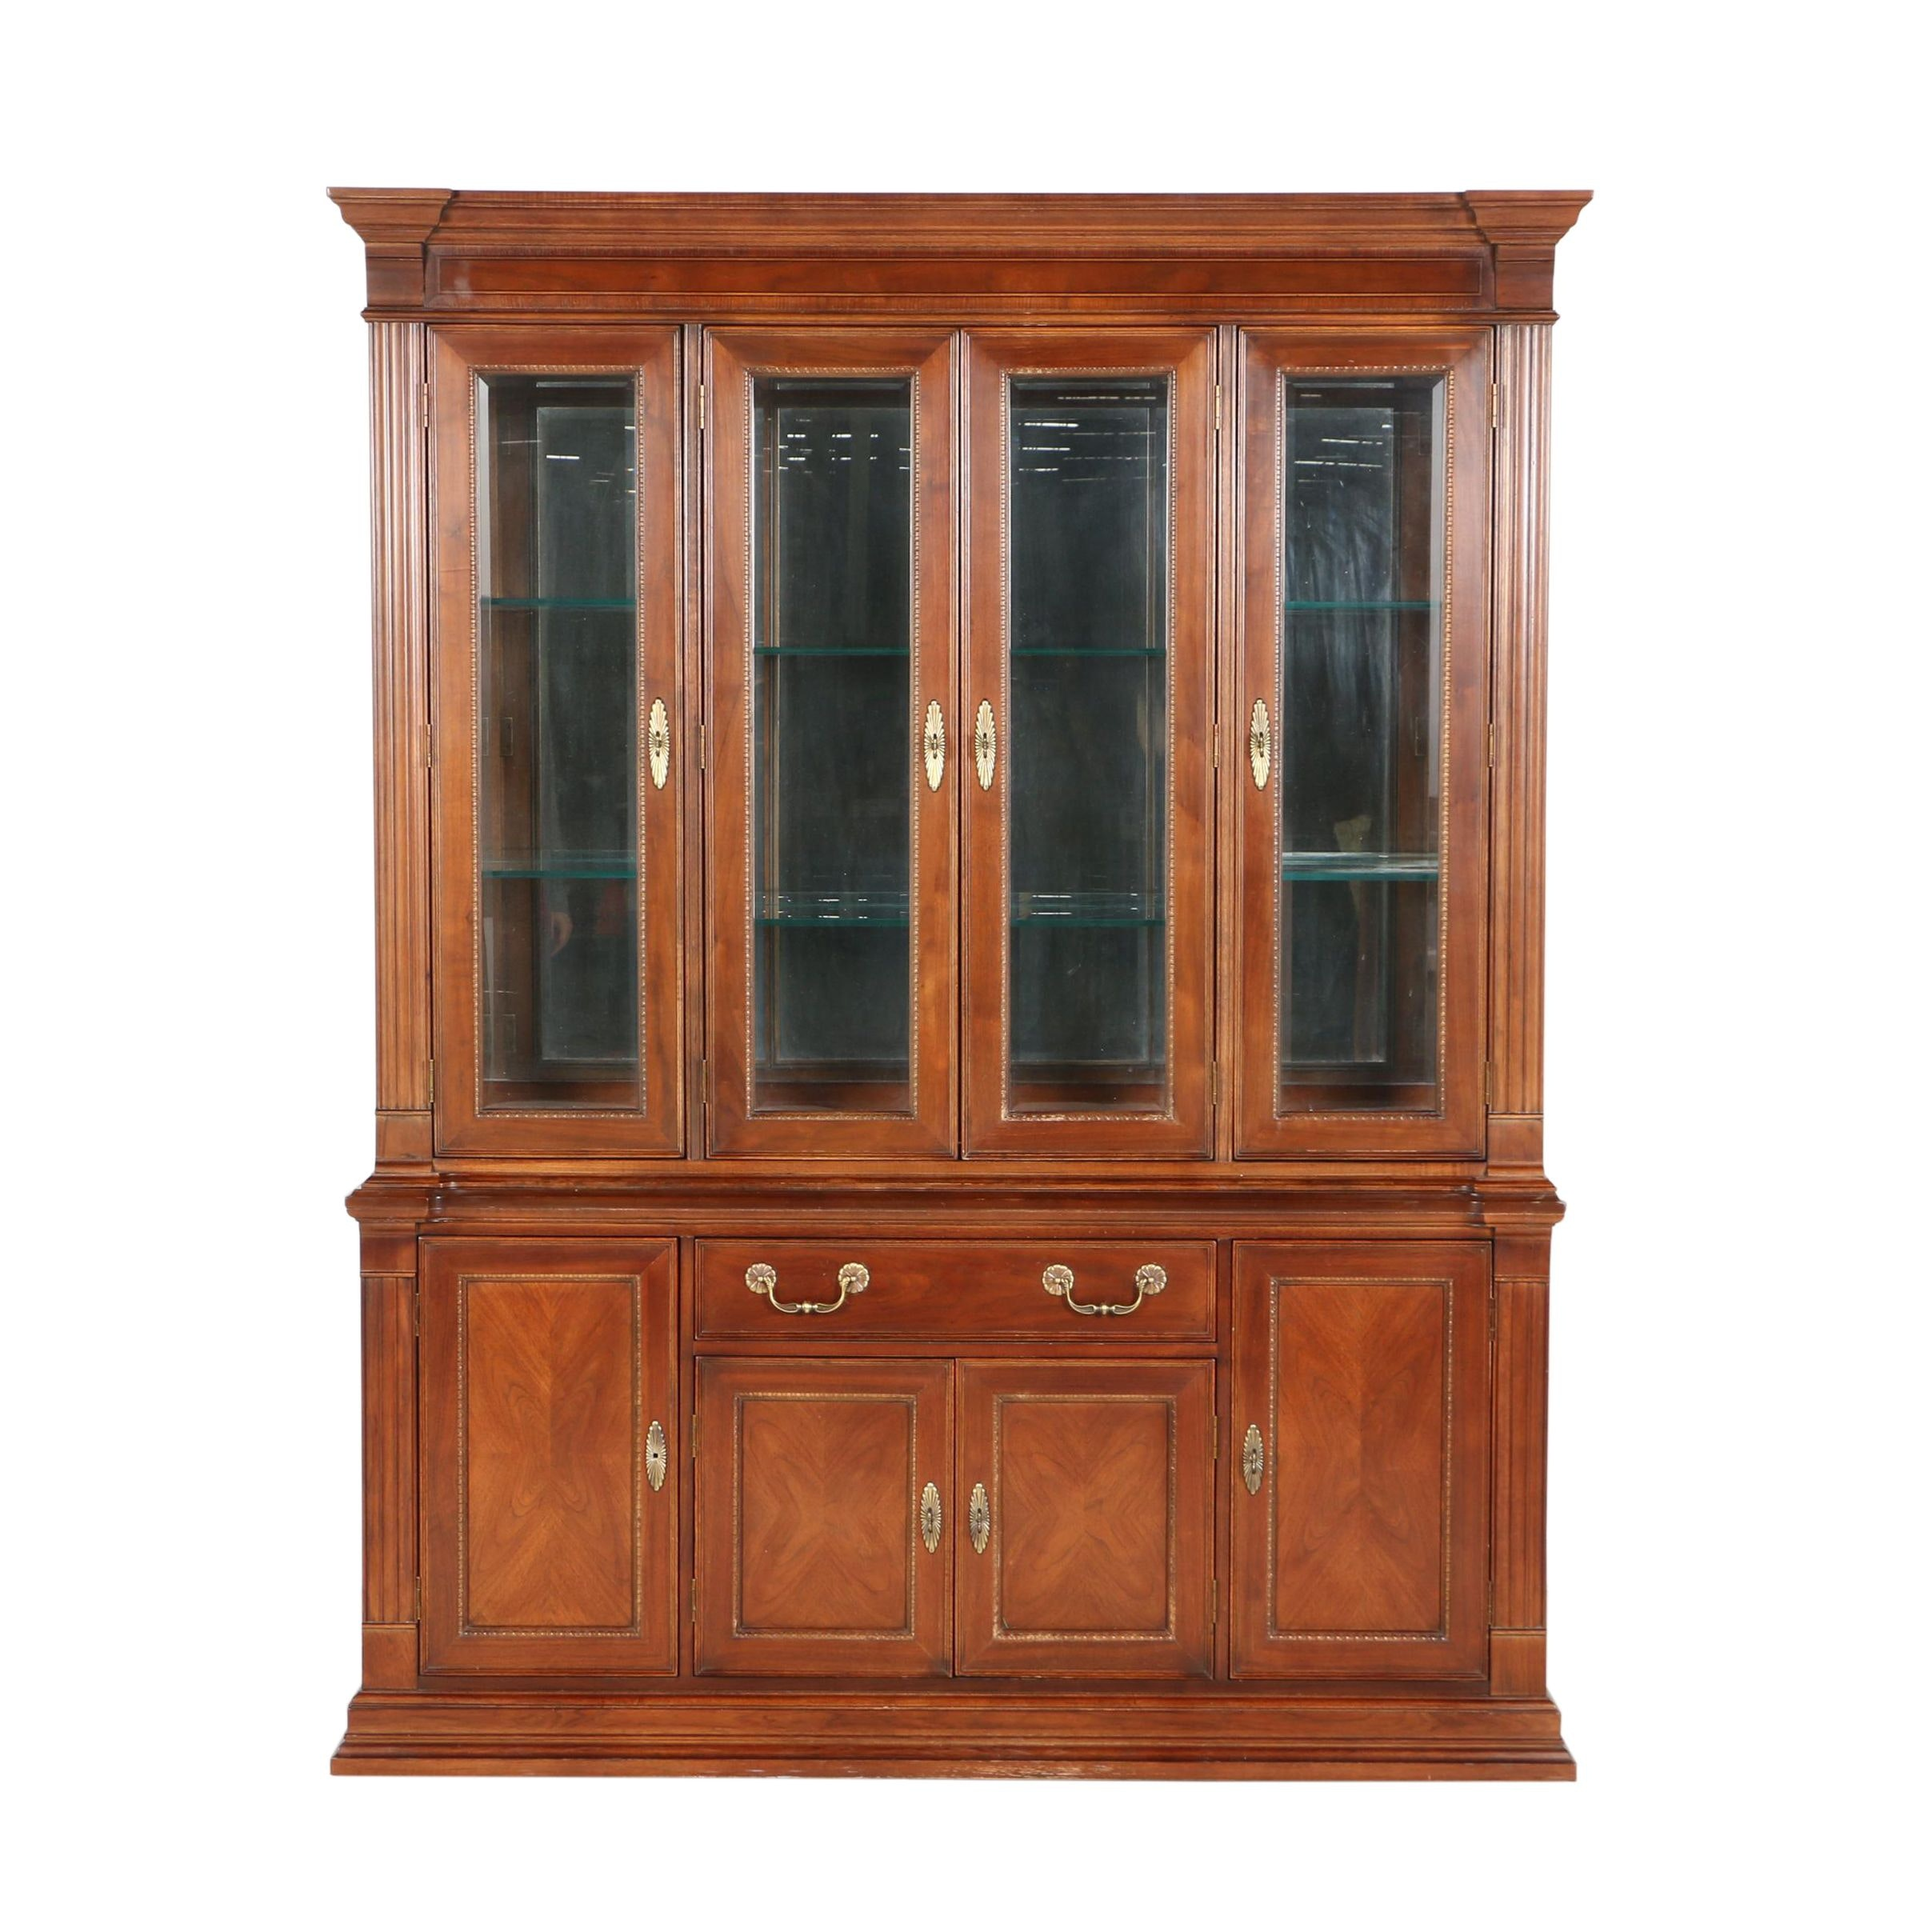 Georgian Style Mahogany Two-Piece China Cabinet by Bernhardt, 20th Century